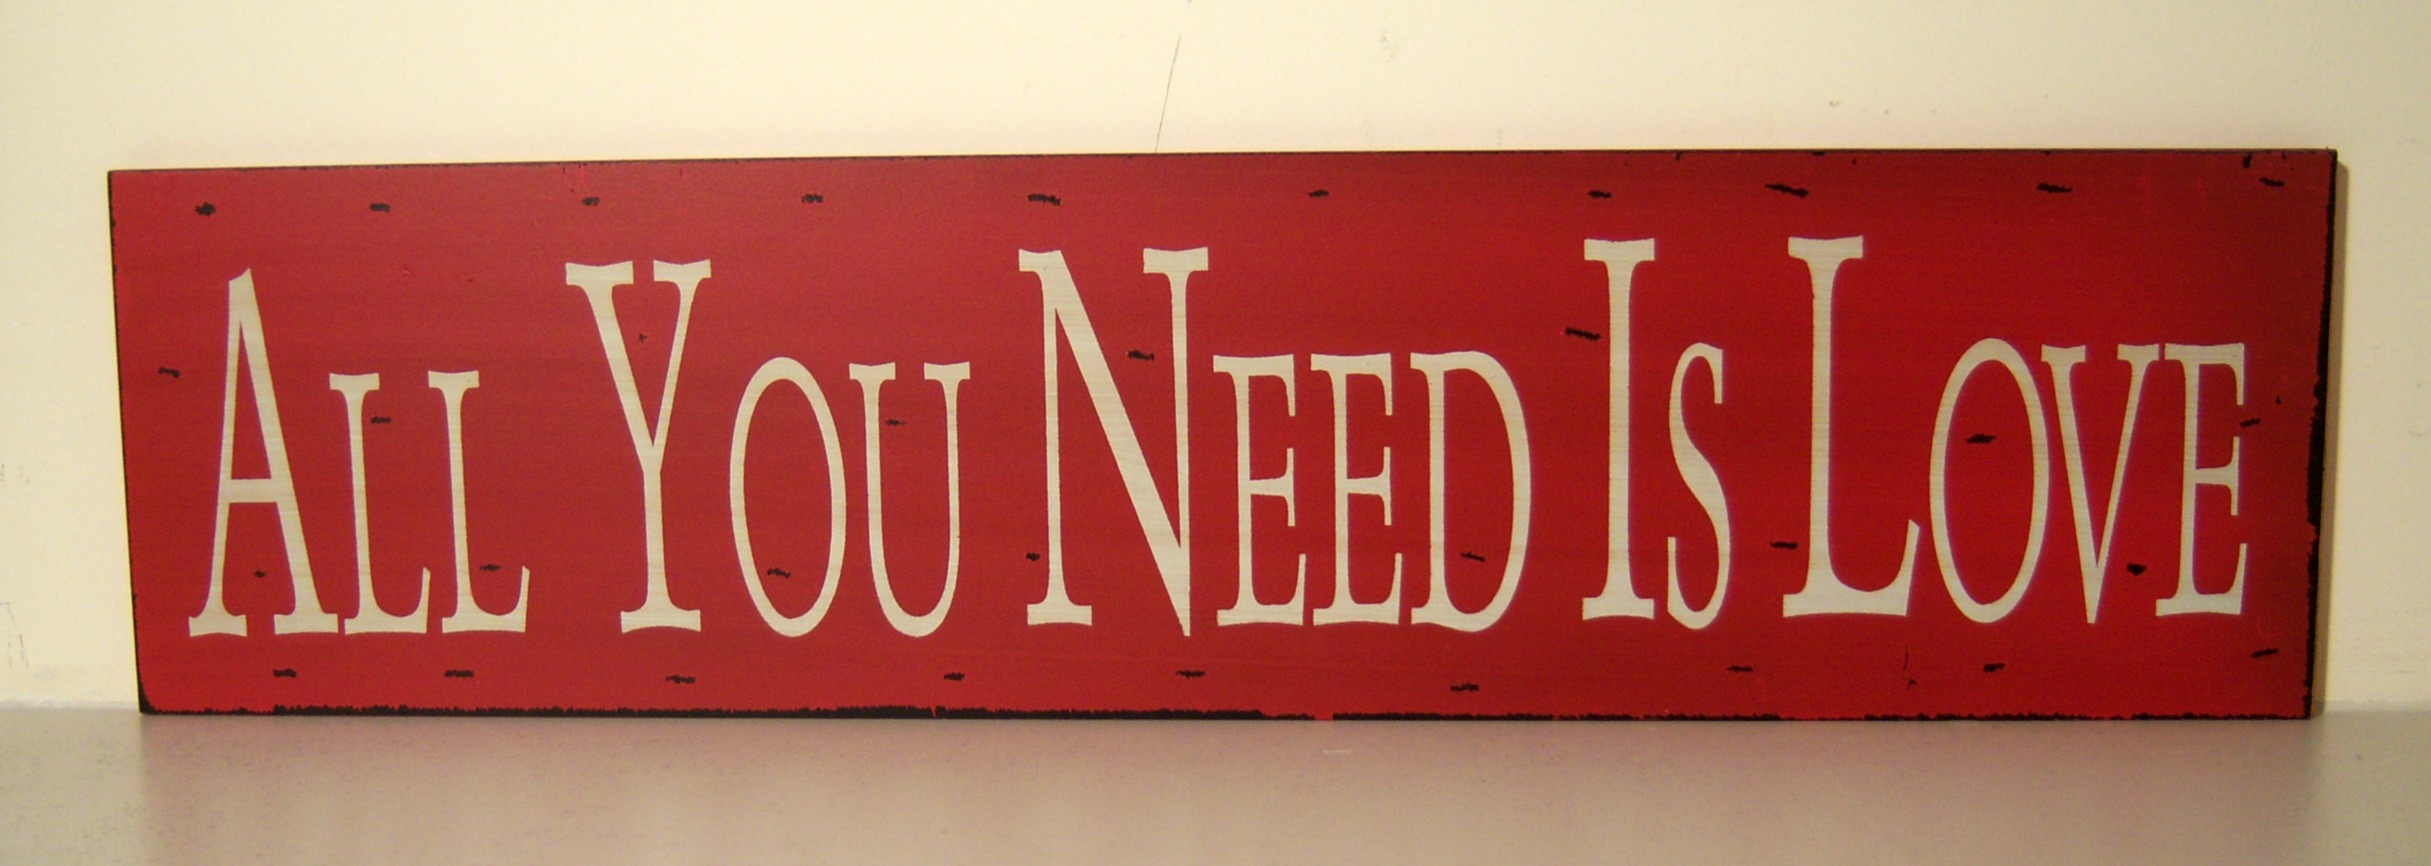 The Home Furnishings Company VINTAGE STLYE RED AND WHITE SLOGAN WOODEN WALL PLAQUE/HANGING SIGN 'ALL YOU NEED IS LOVE'